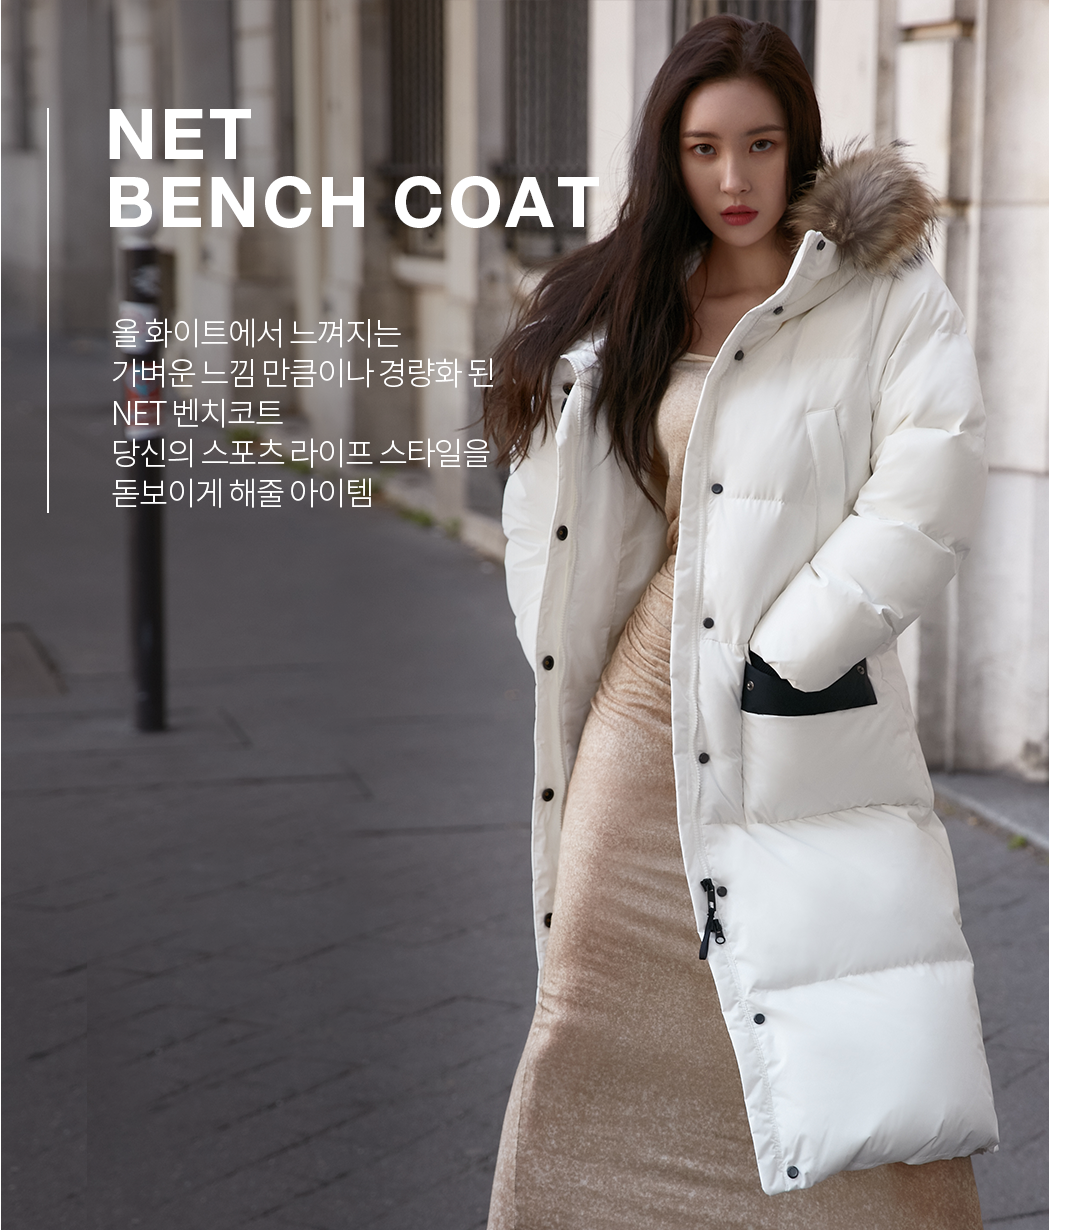 NET BENCH COAT